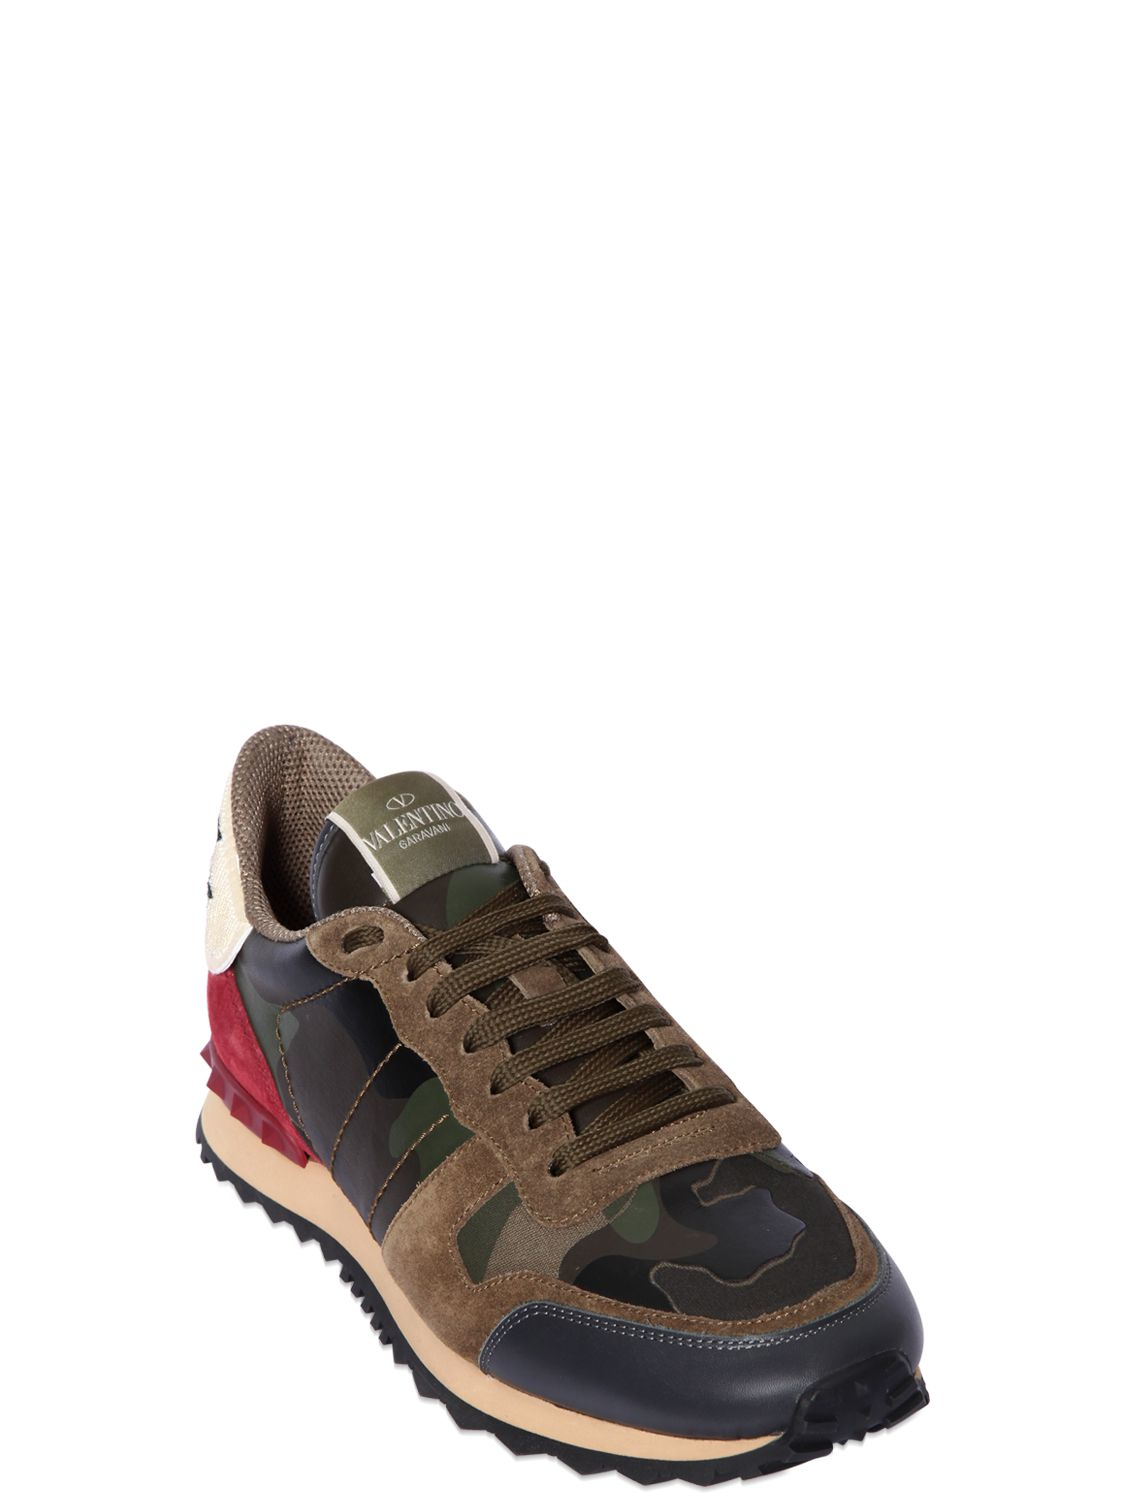 valentino rockrunner beaded eagle camo sneakers for men lyst. Black Bedroom Furniture Sets. Home Design Ideas